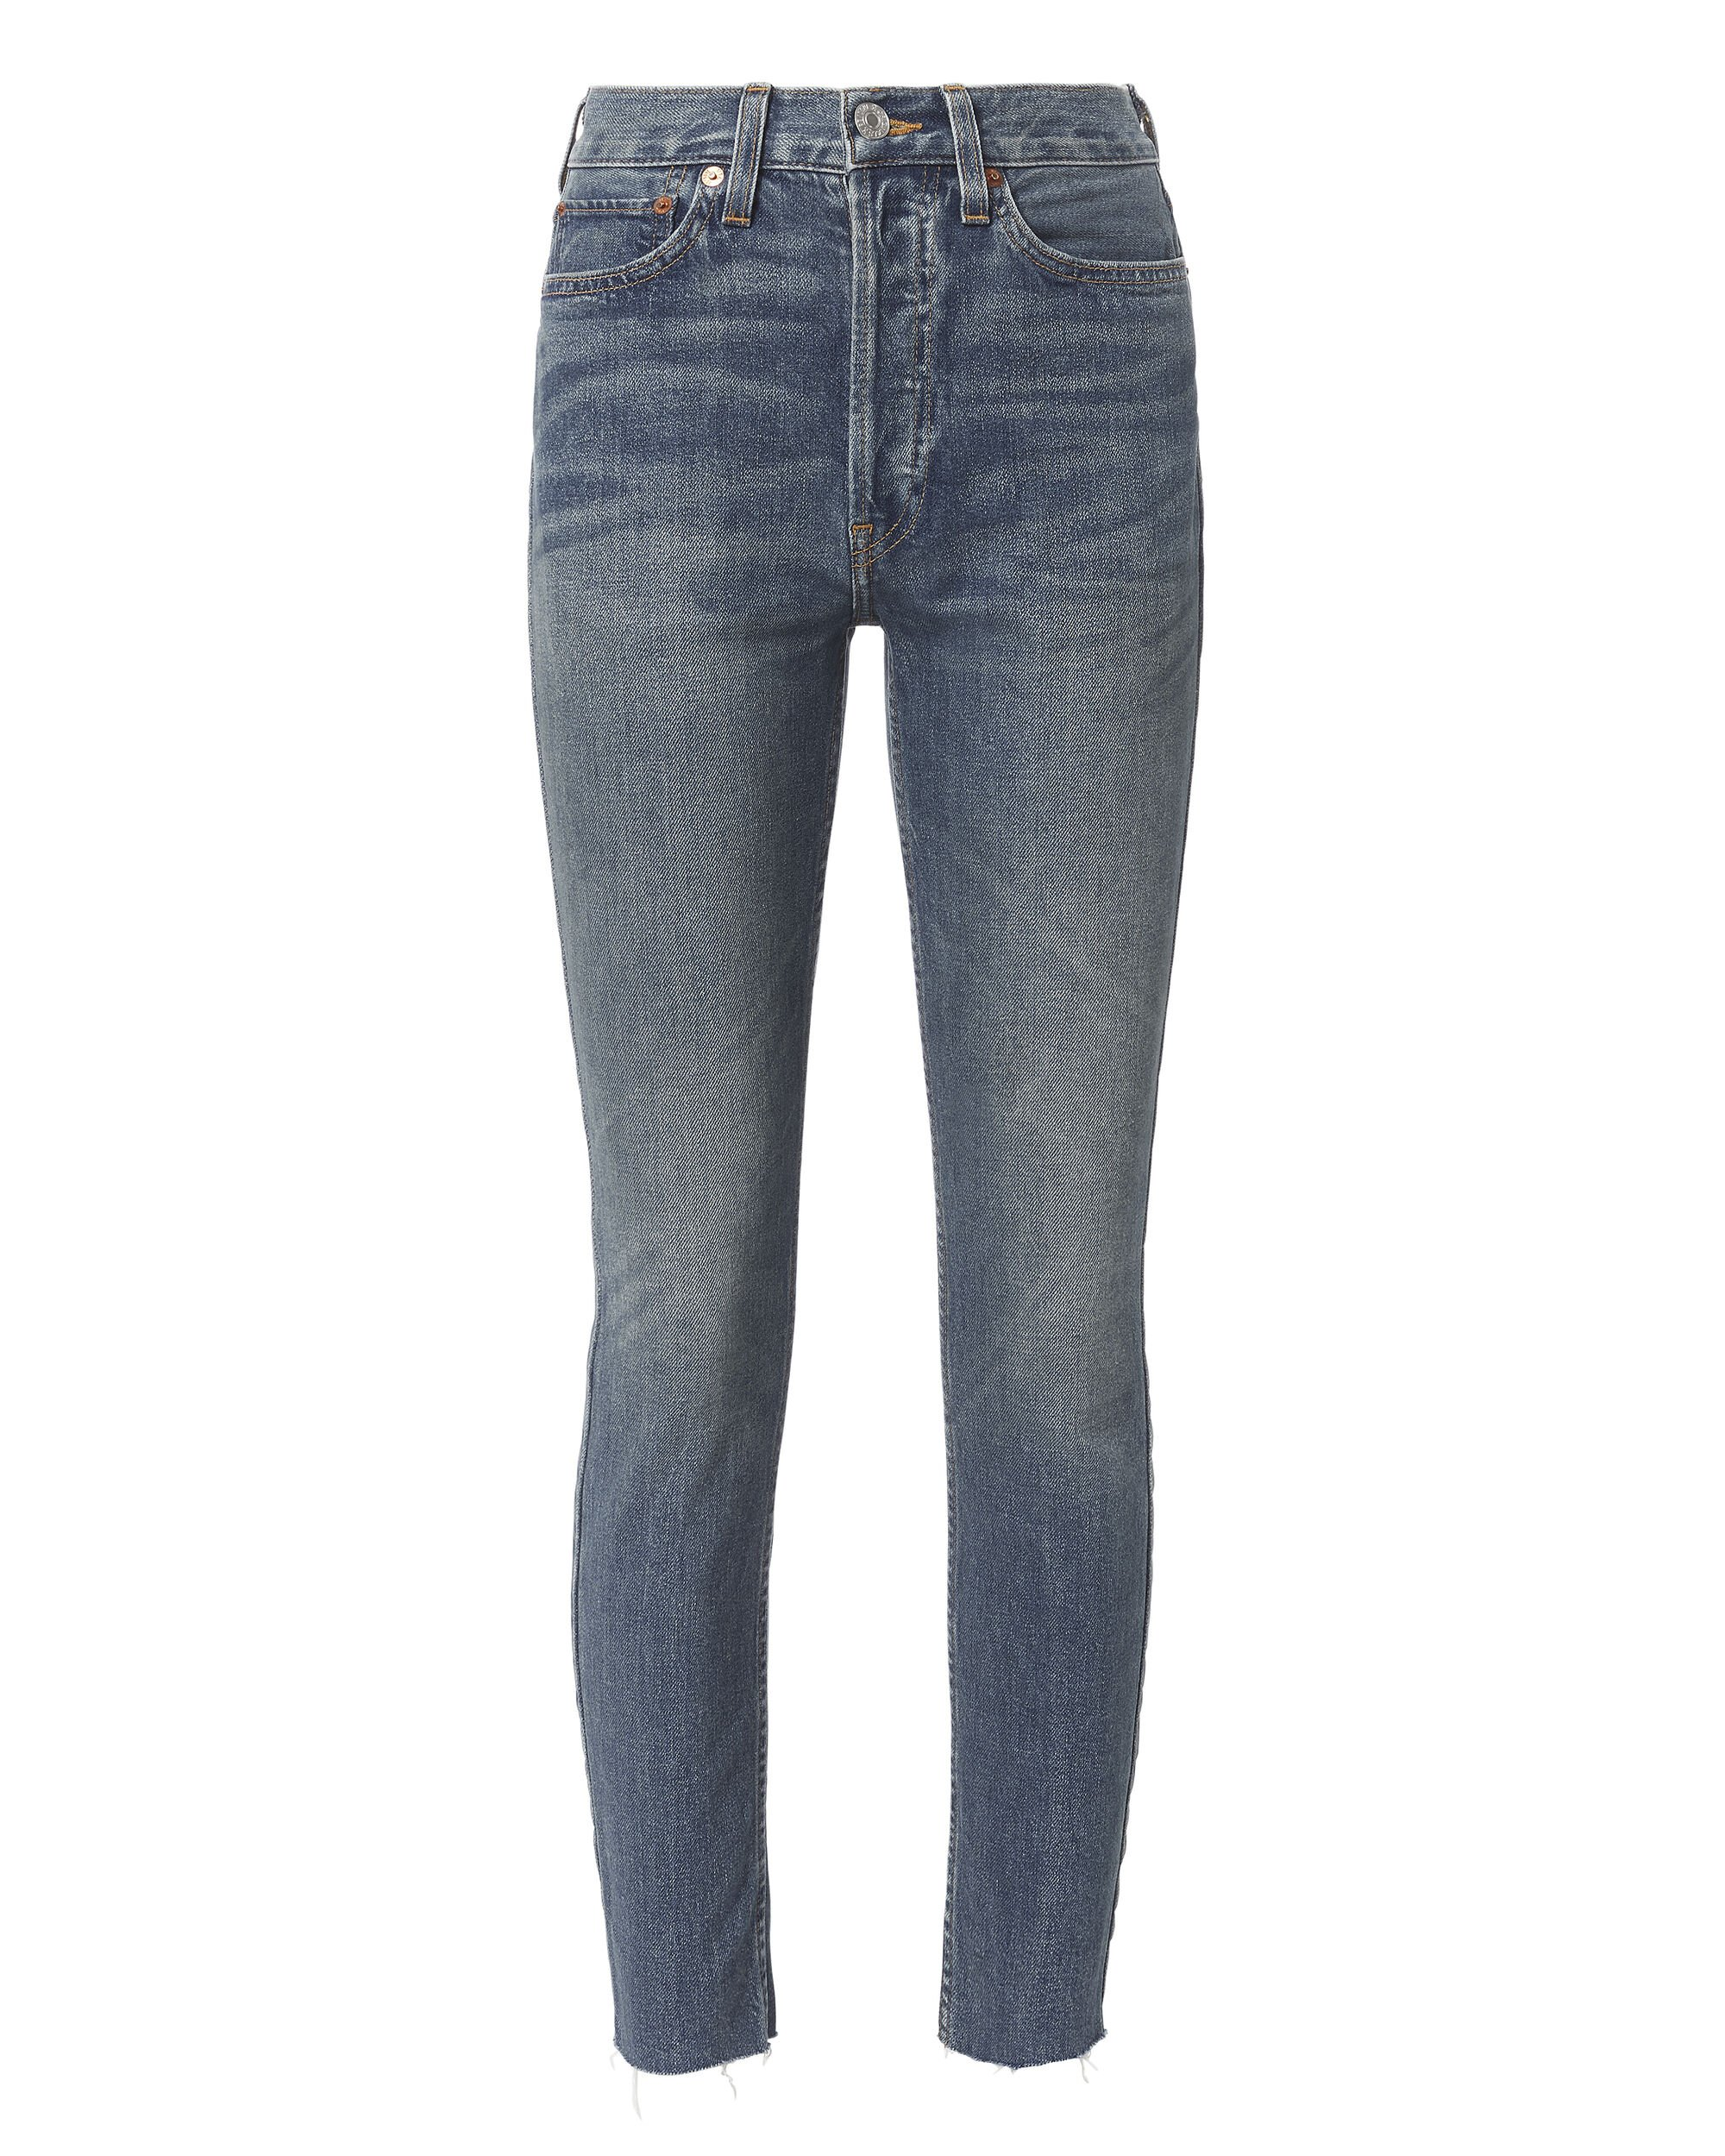 High-Rise Ankle Crop Dark Wash Jeans, DENIM, hi-res